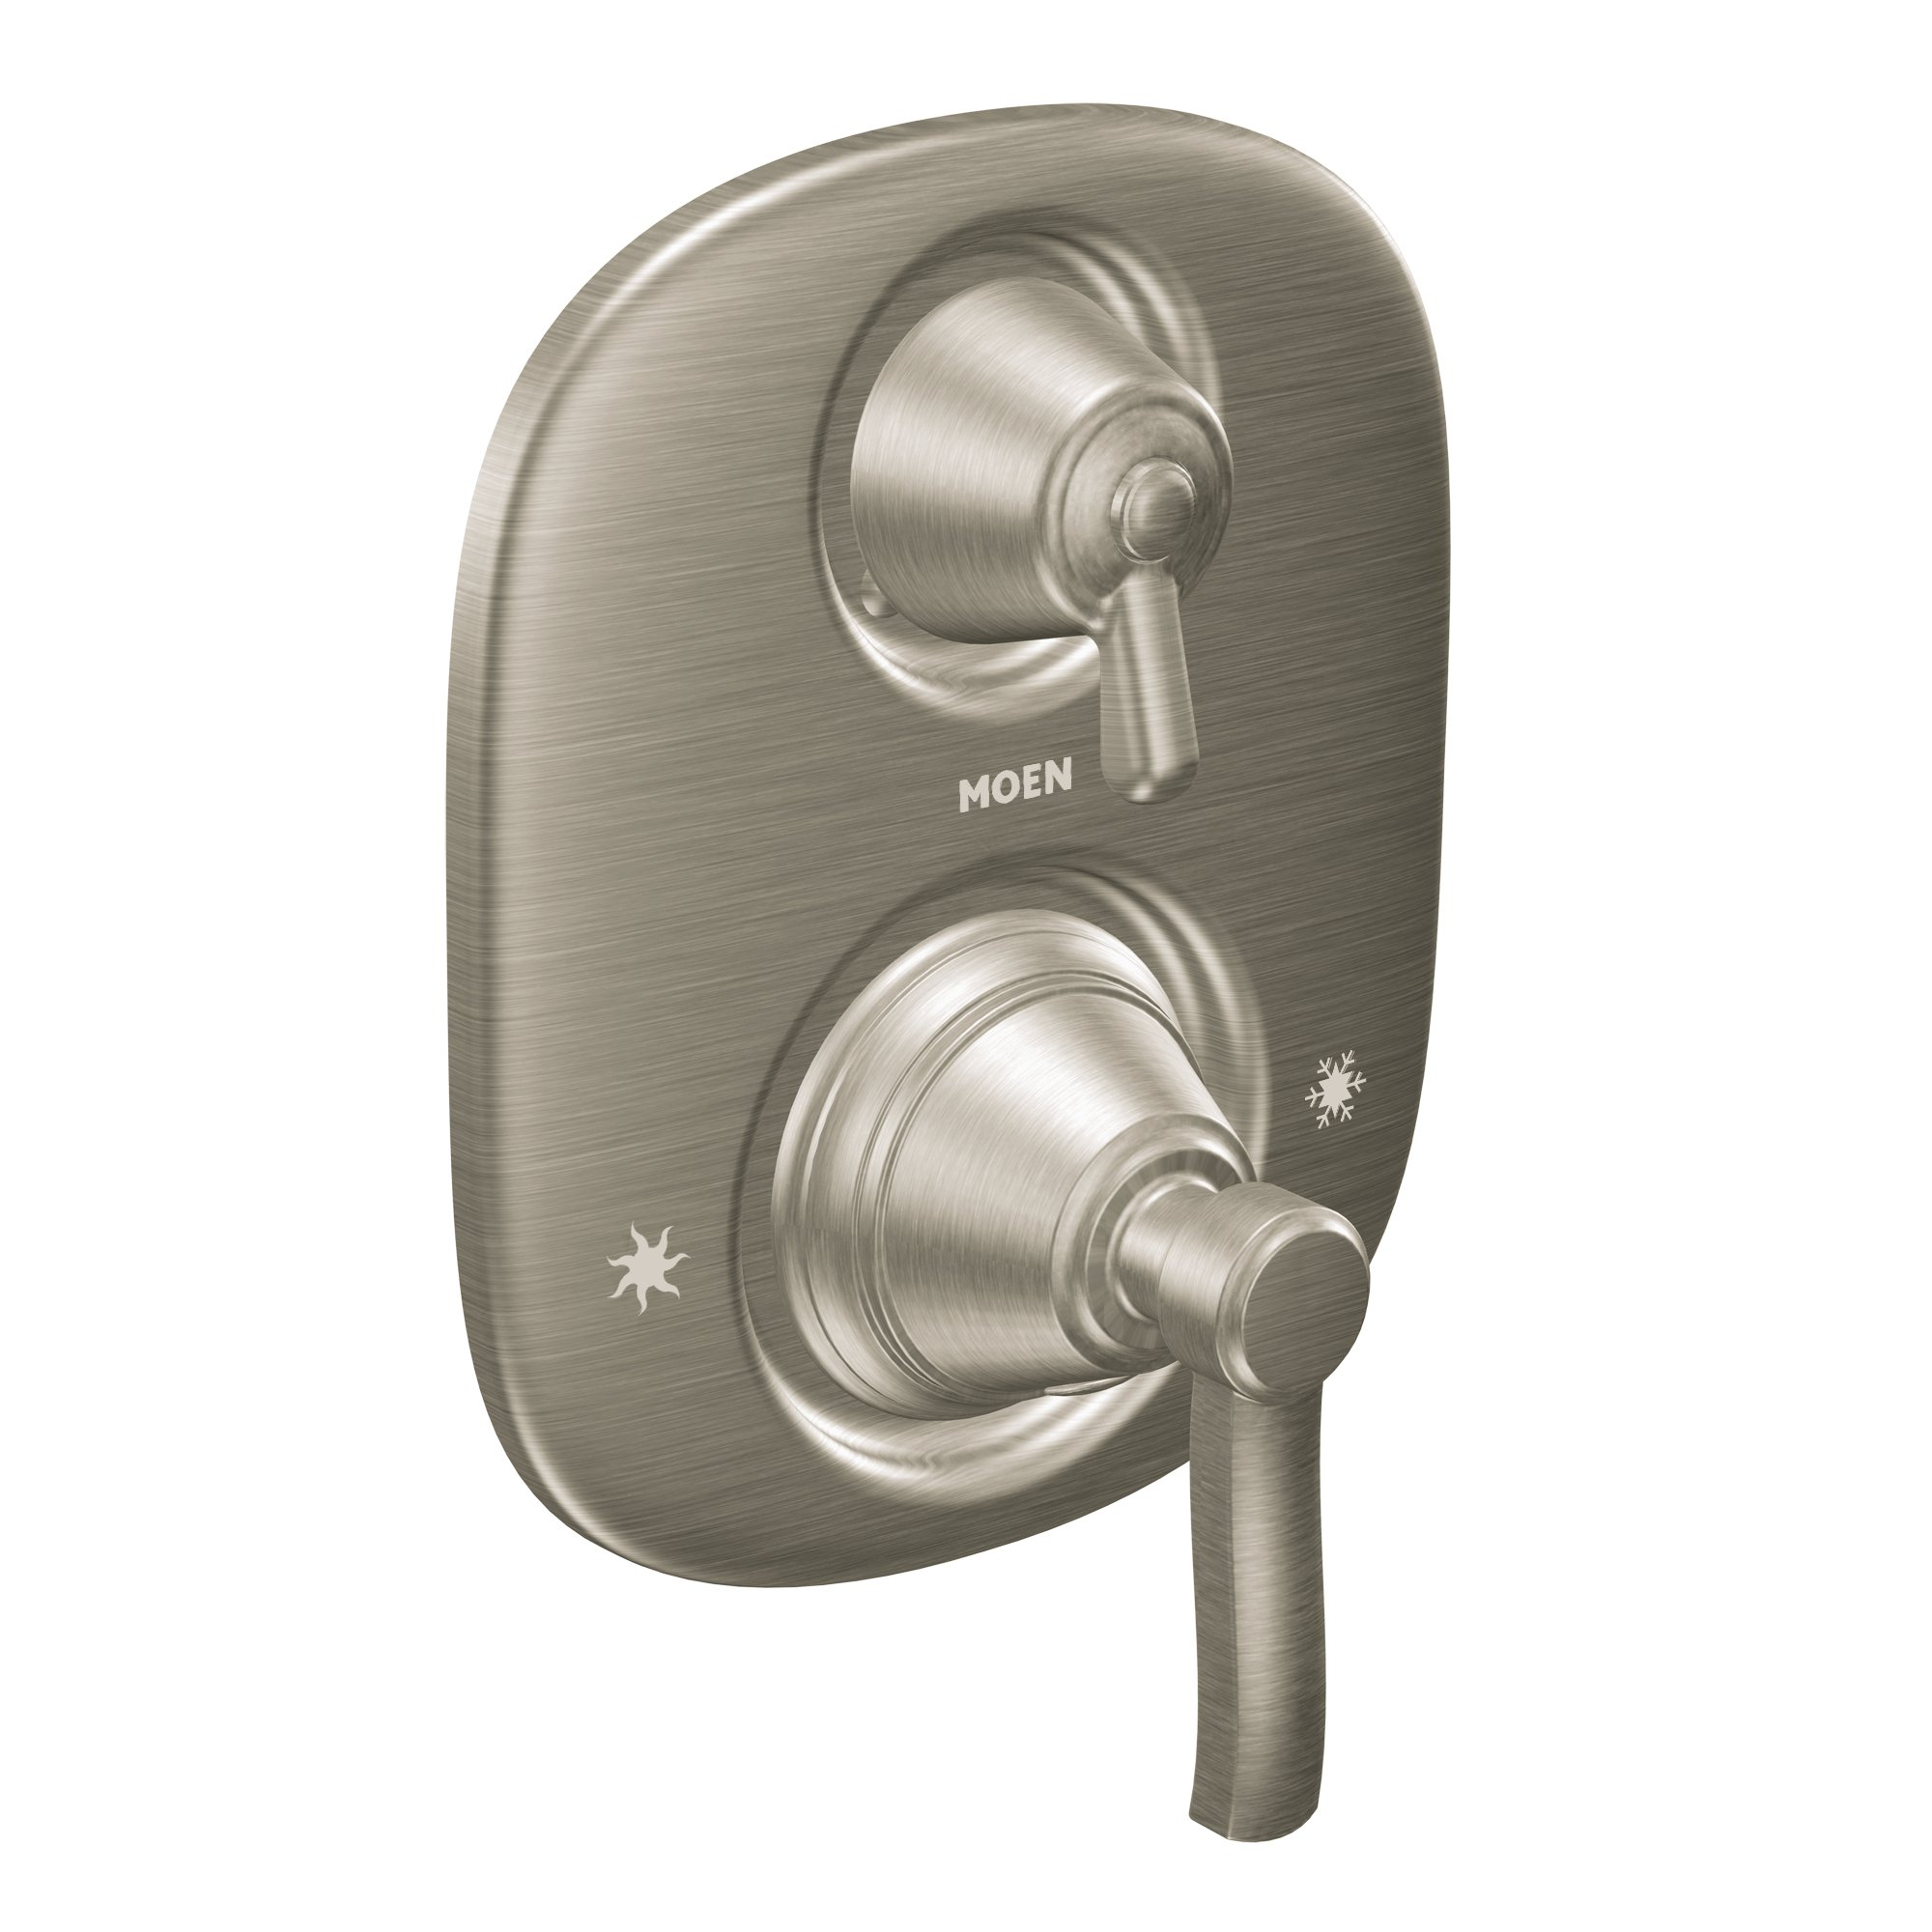 Moen TS4211BN Rothbury Moentrol Shower Valve with 3-Function Integrated Diverter Valve Trim, Valve Required, Brushed Nickel by Moen (Image #1)